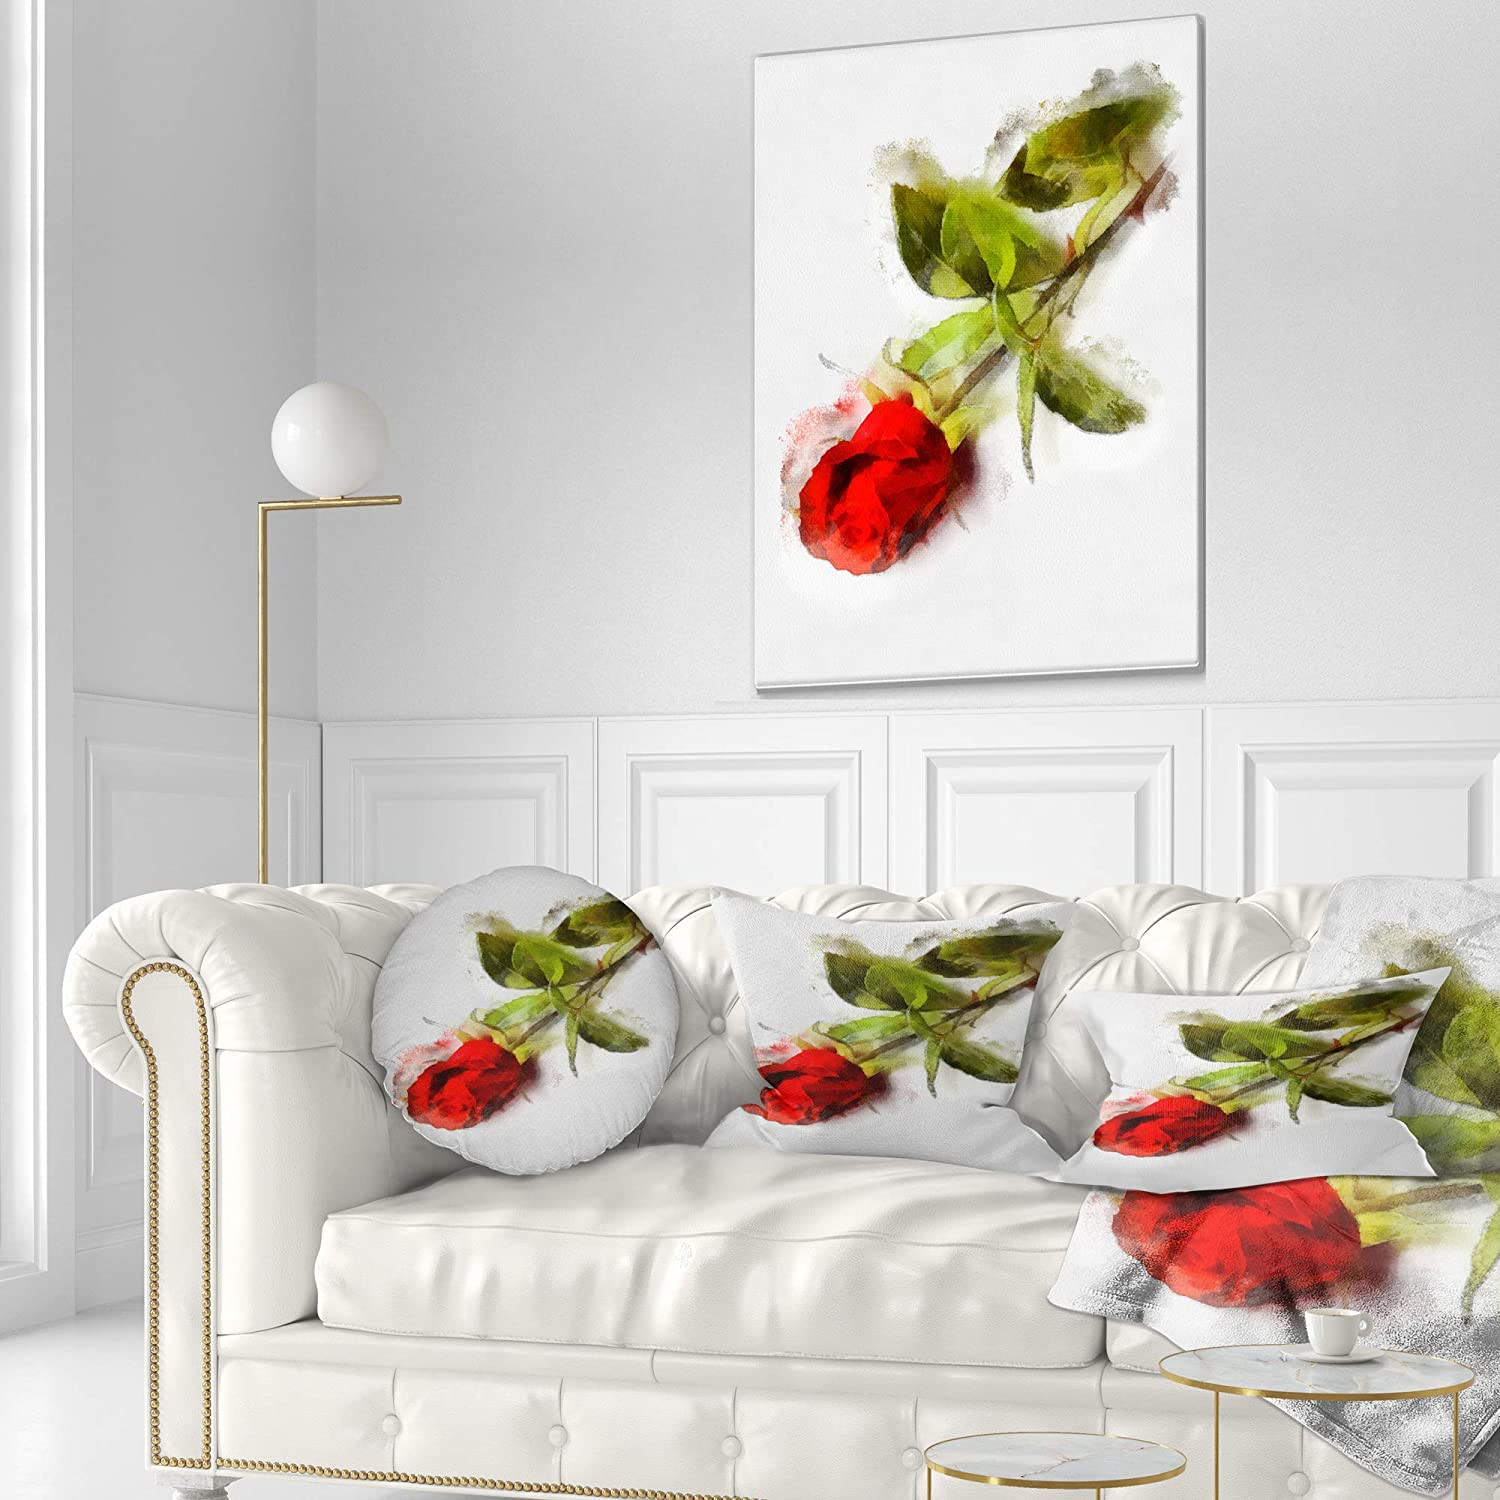 Designart CU13900-16-16-C Red Rose with Stem Drawing Flower Round Cushion Cover for Living Room Sofa Throw Pillow 16 Insert Printed On Both Side